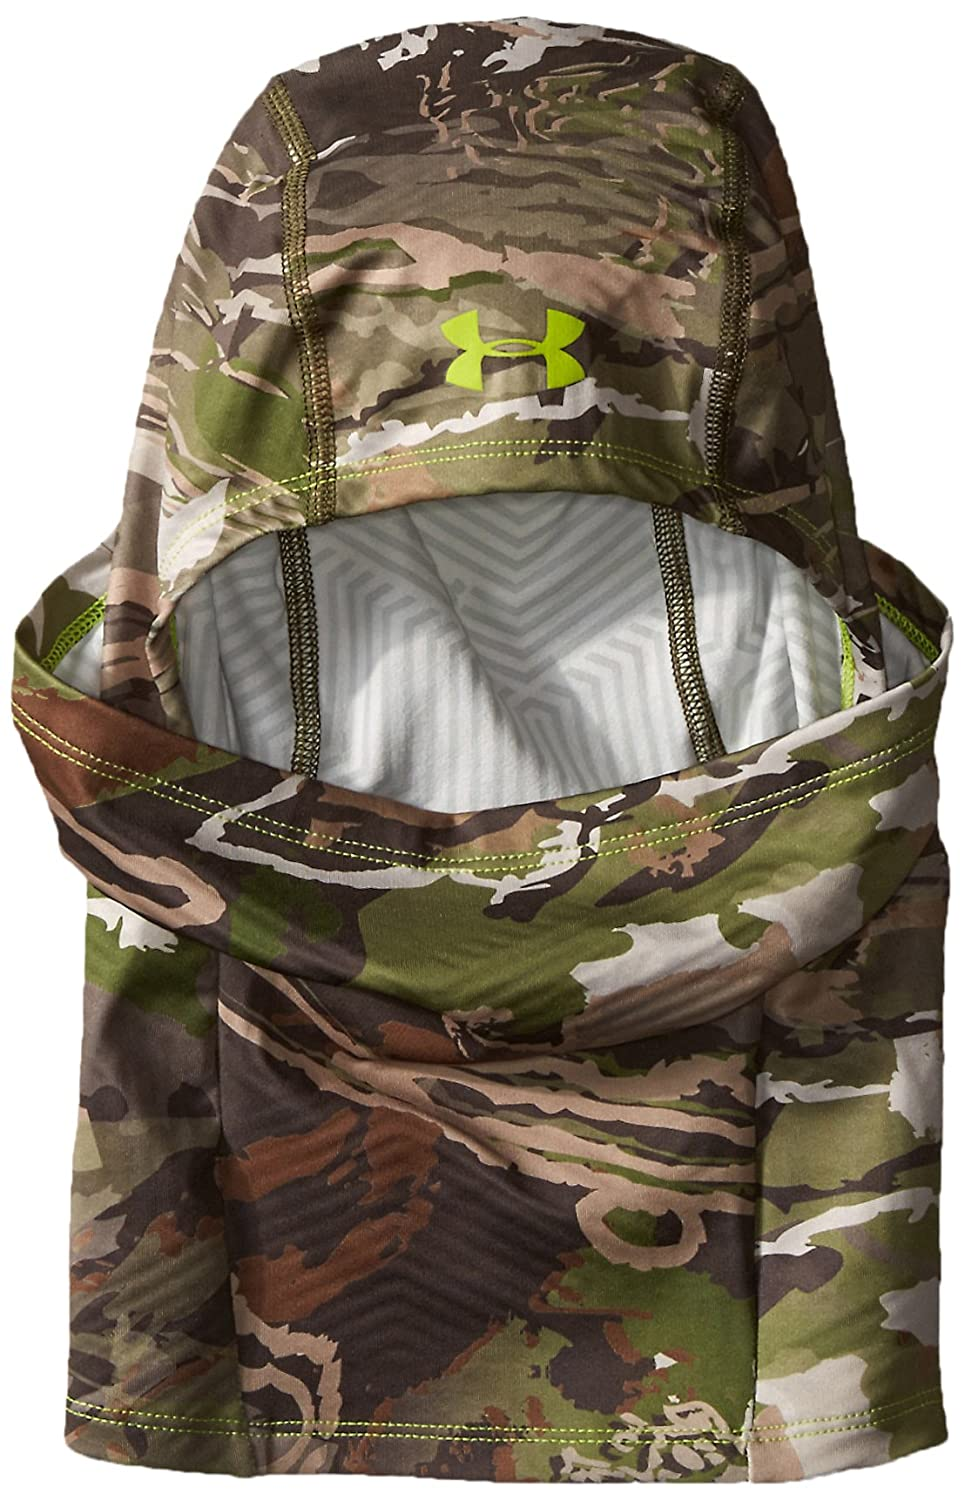 Under Armour Cold Gear Infrared SC Beanie, Ridge Reaper Camouflage Fog, One Size Under Armour Accessories 1249606